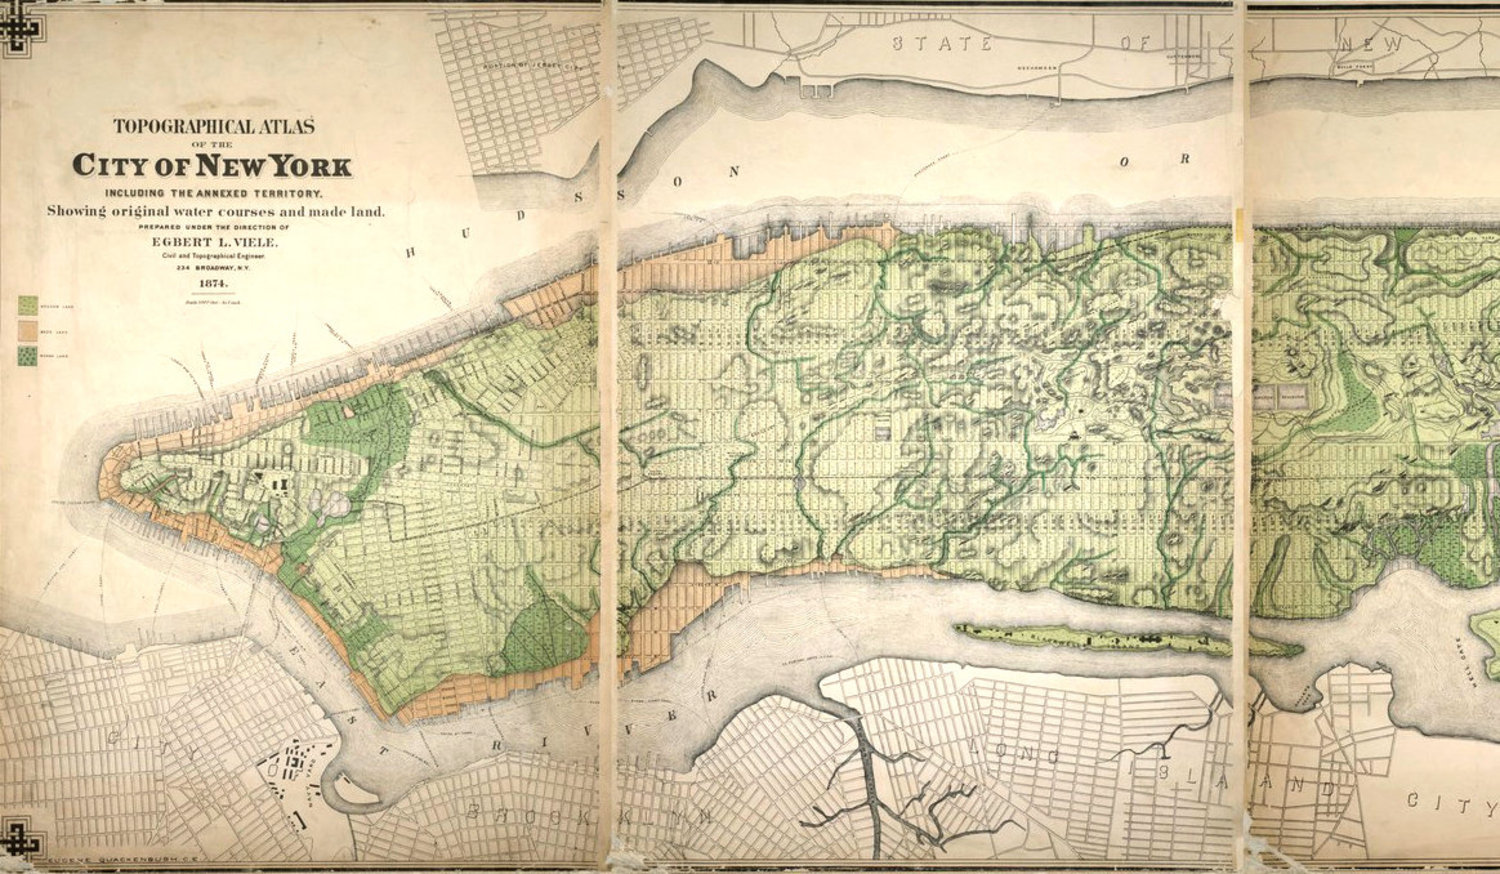 A topographical map of New York from 1874 showing original water courses.